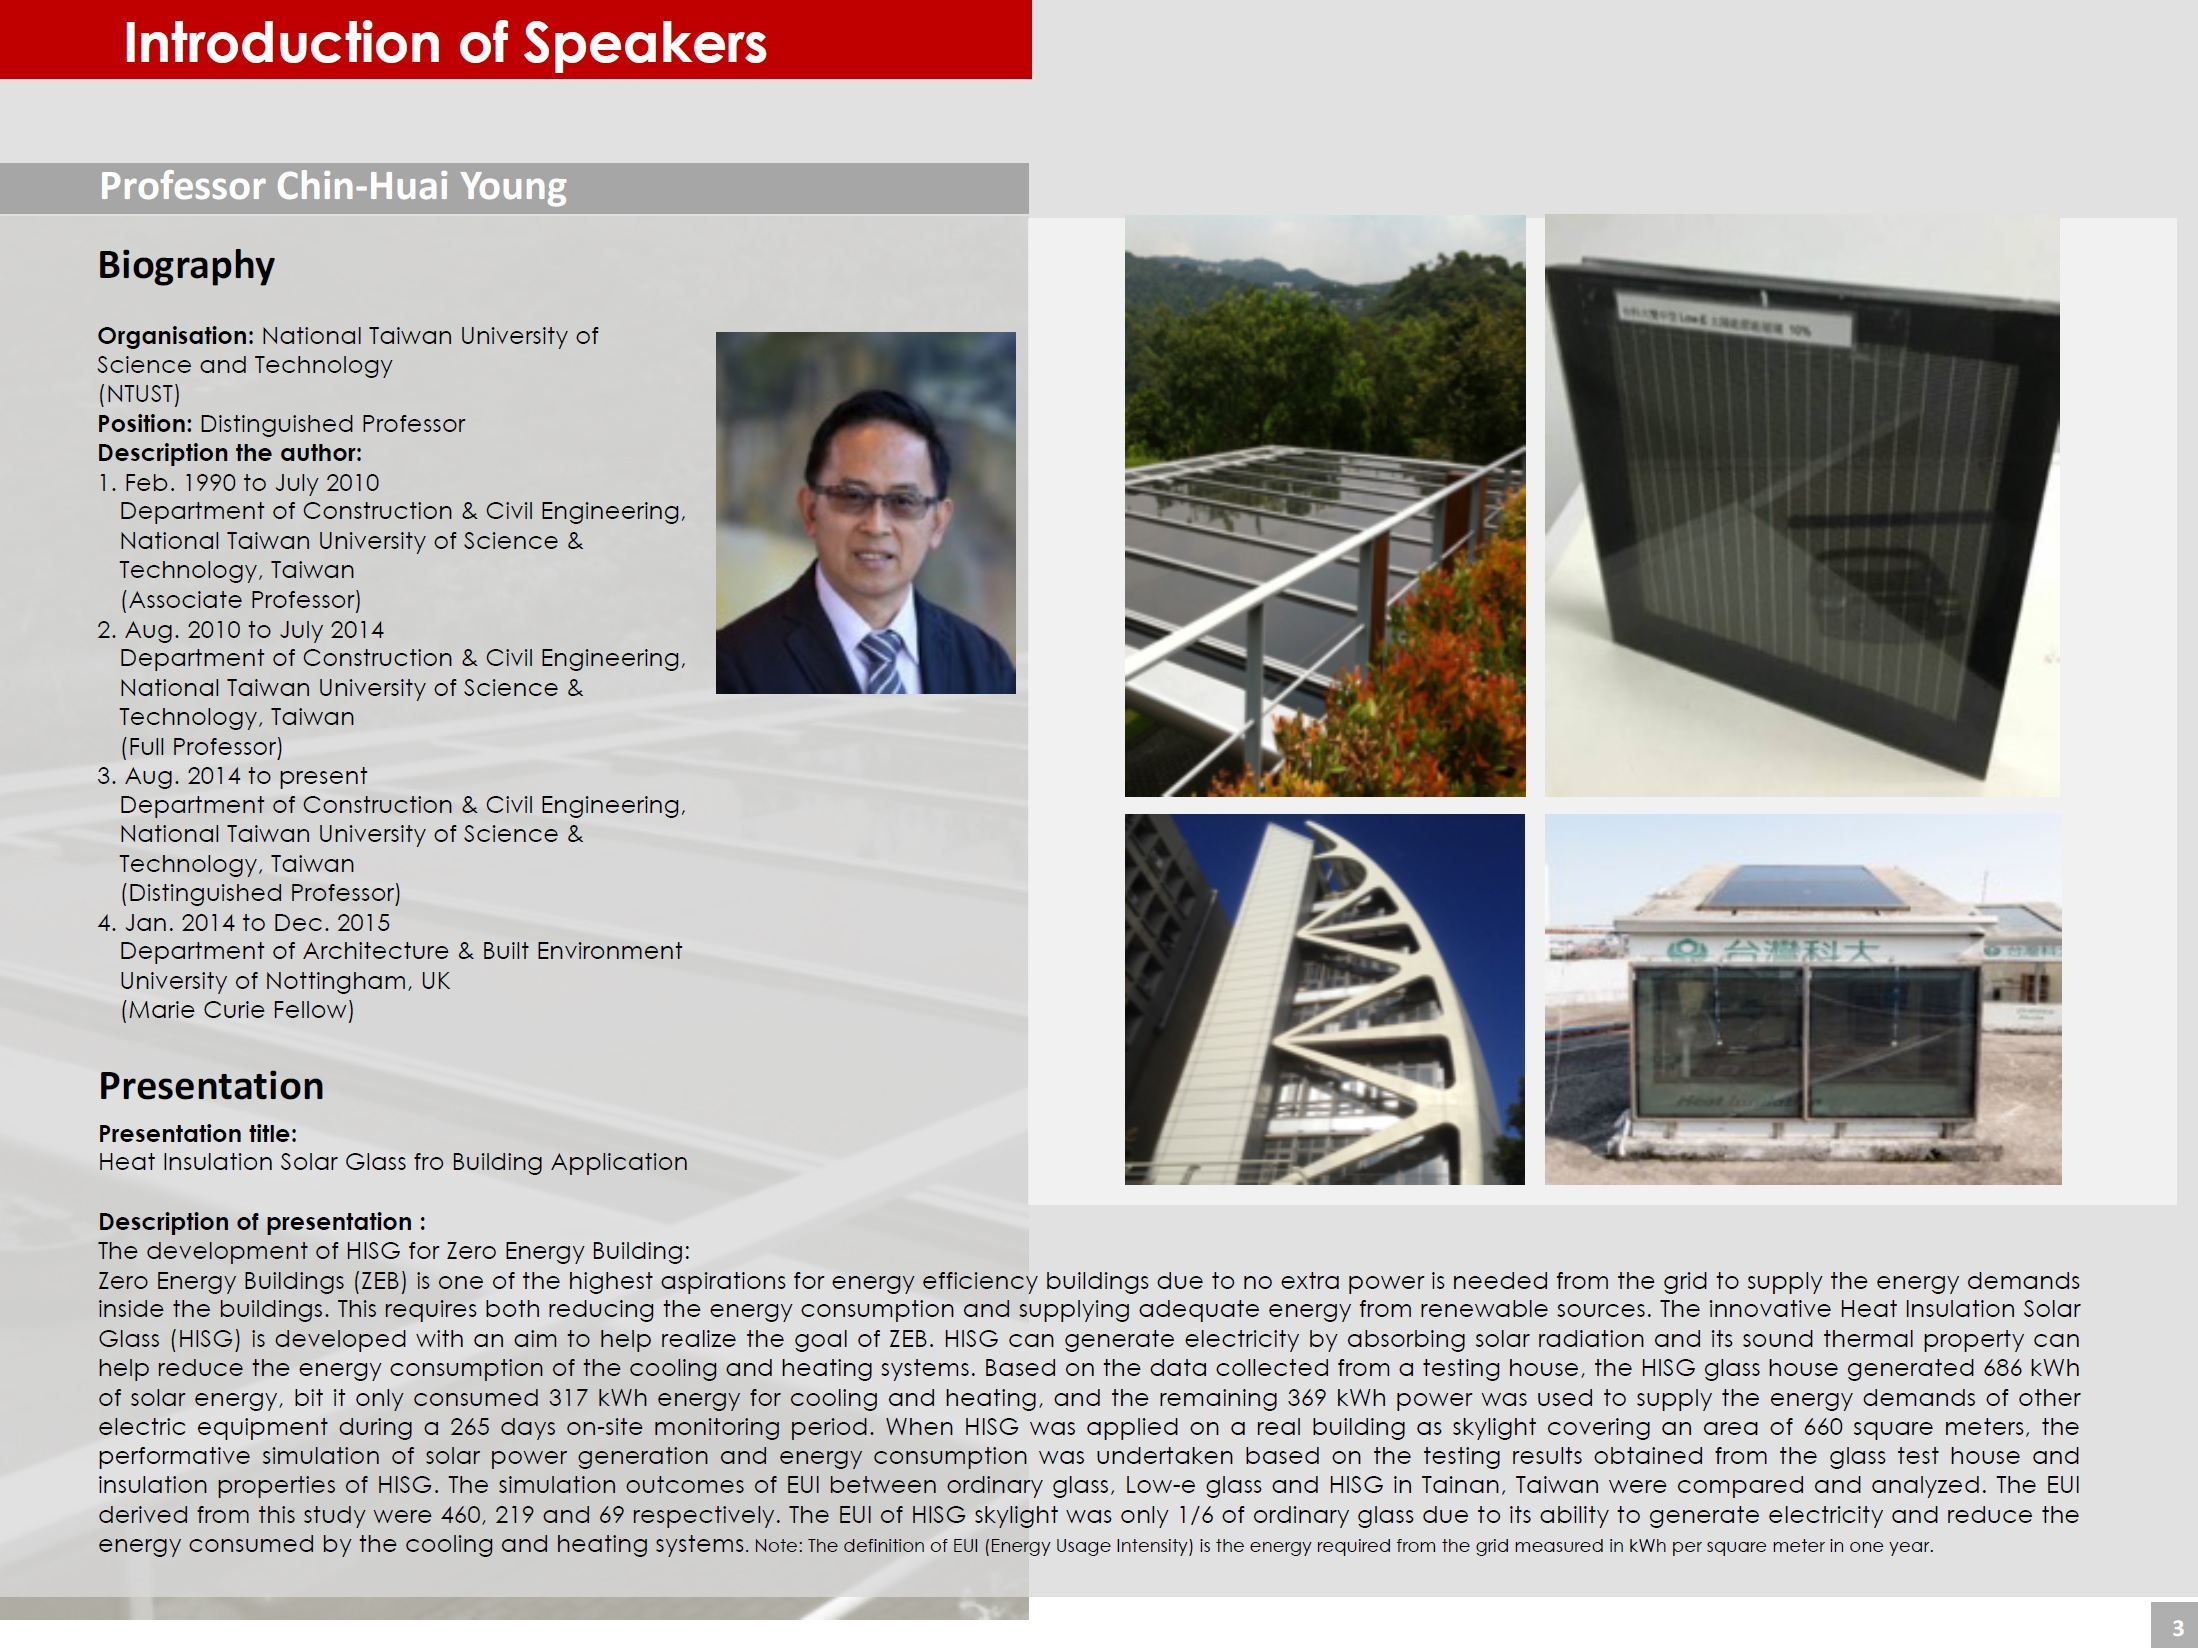 Page 3 (Introduction of Speakers)